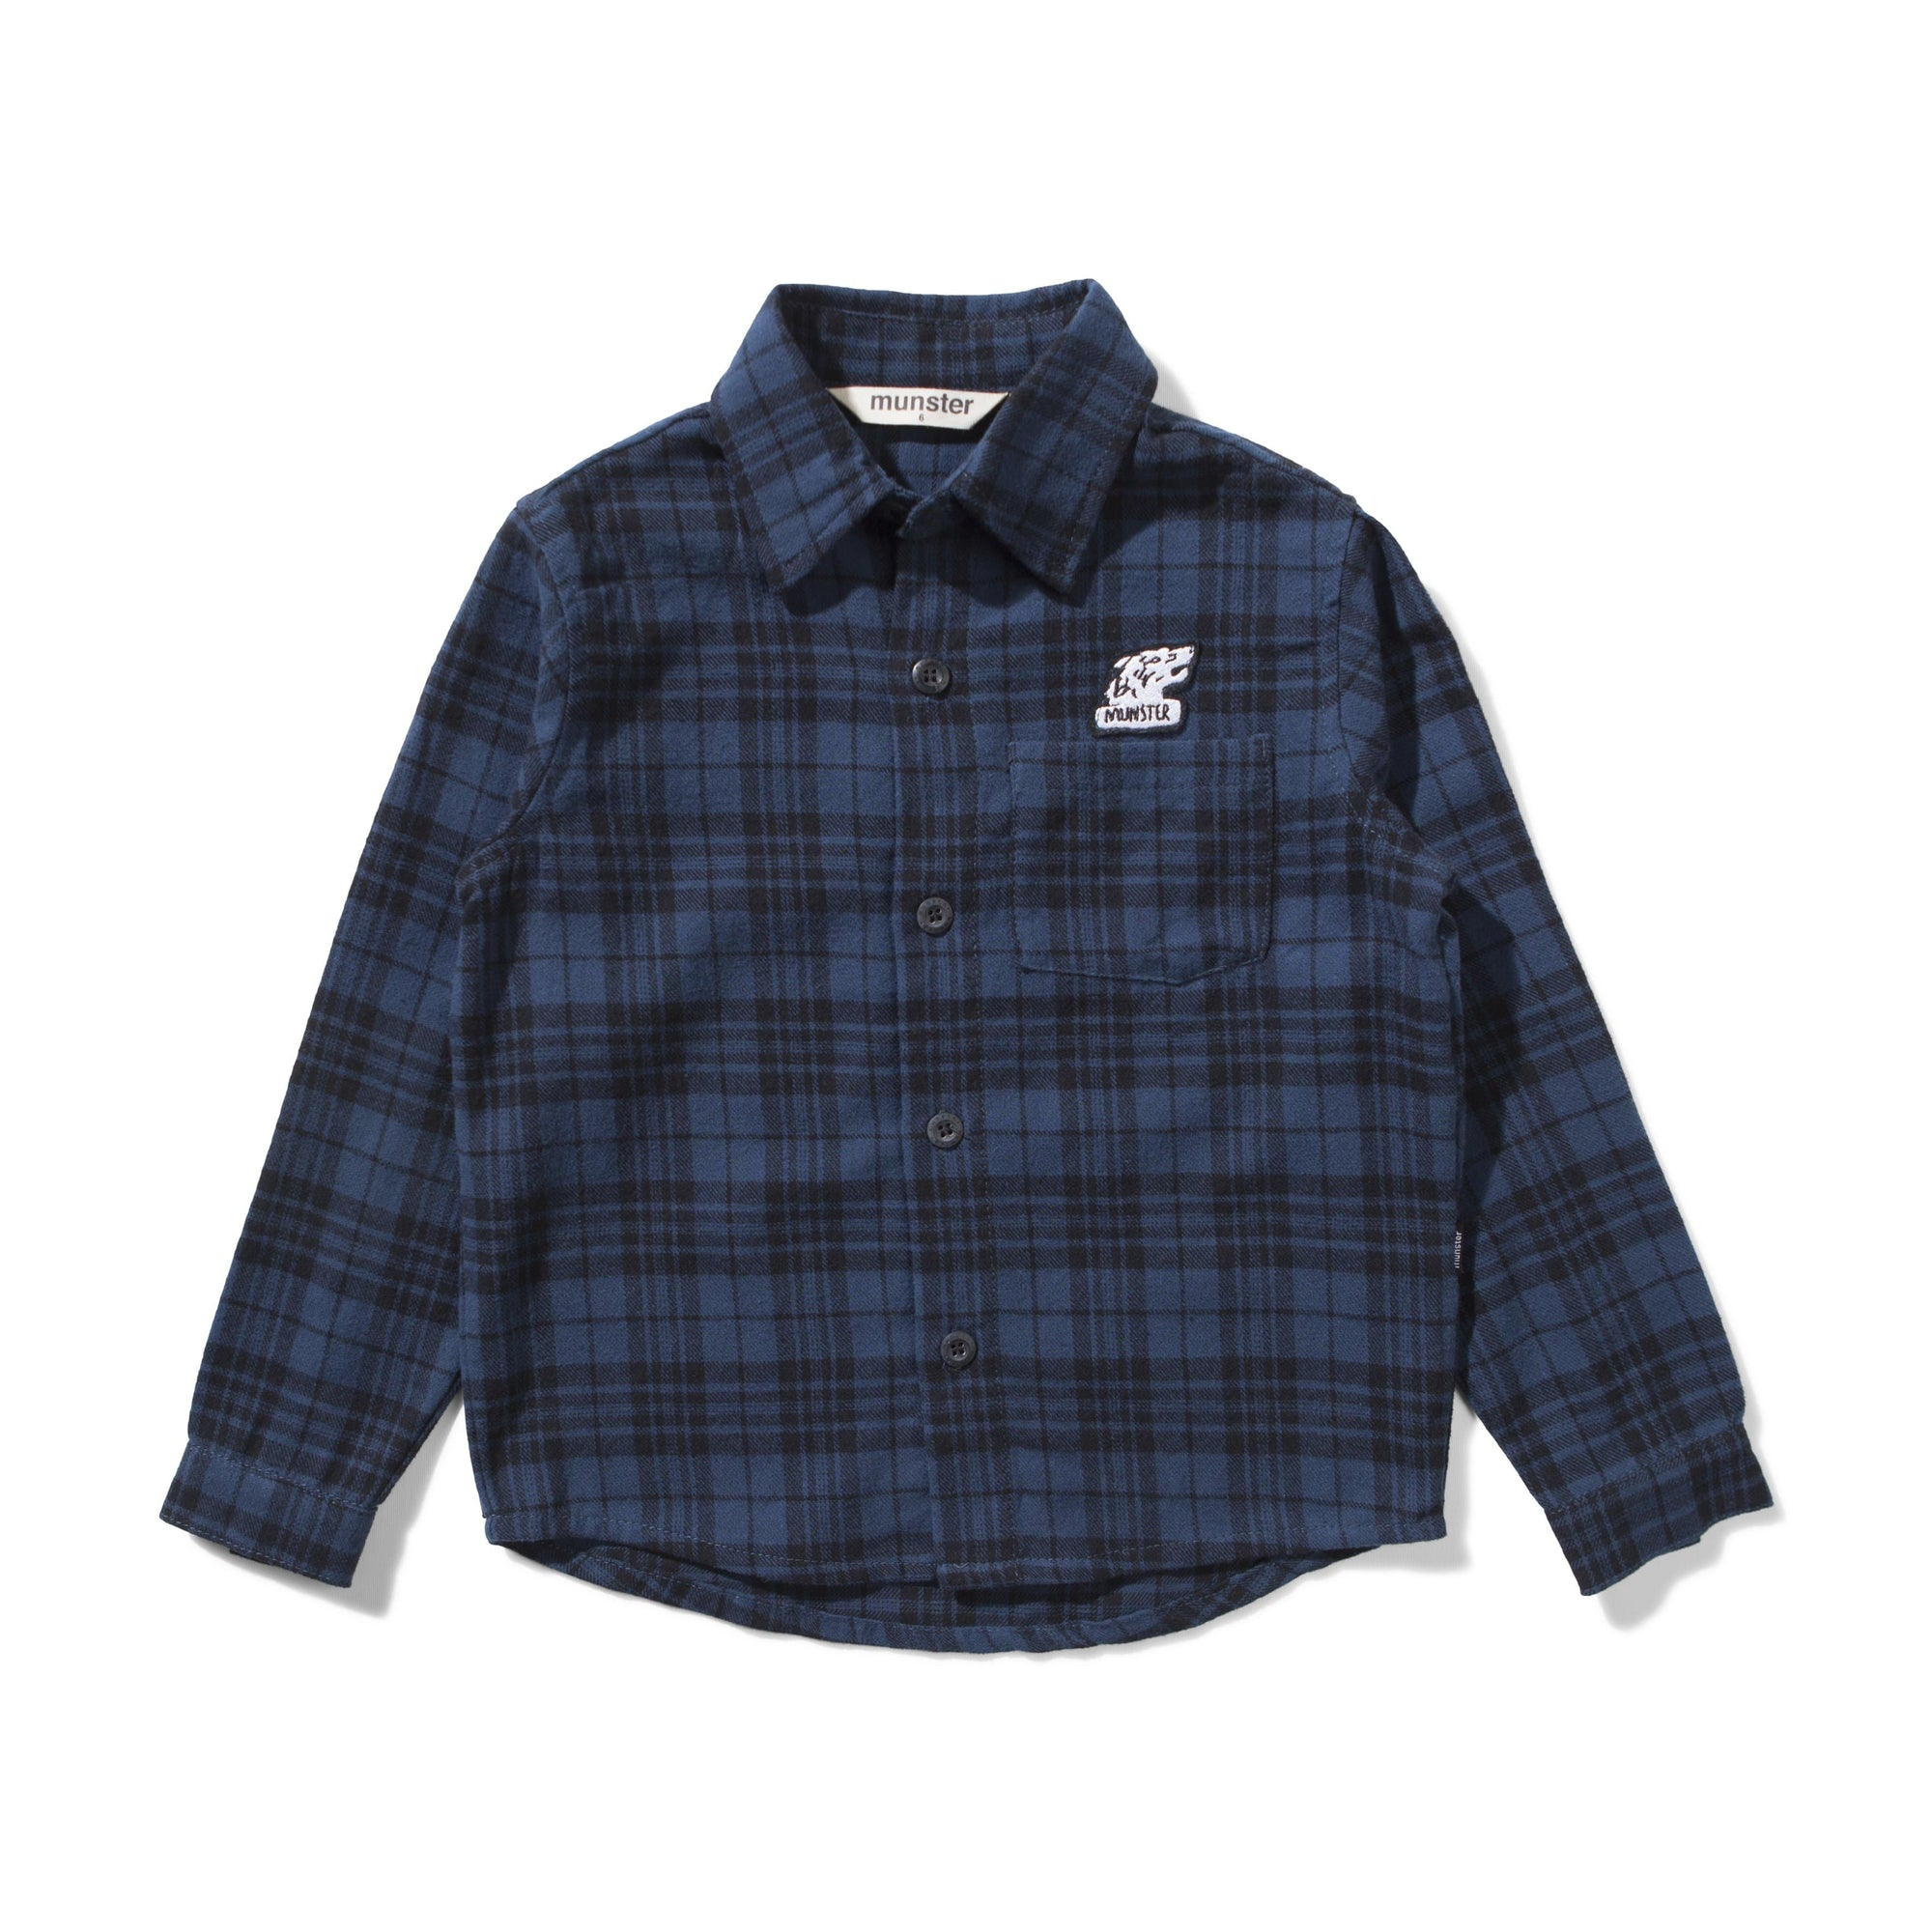 Munster Kids Niseiko Shirt Blue (4687703867523)